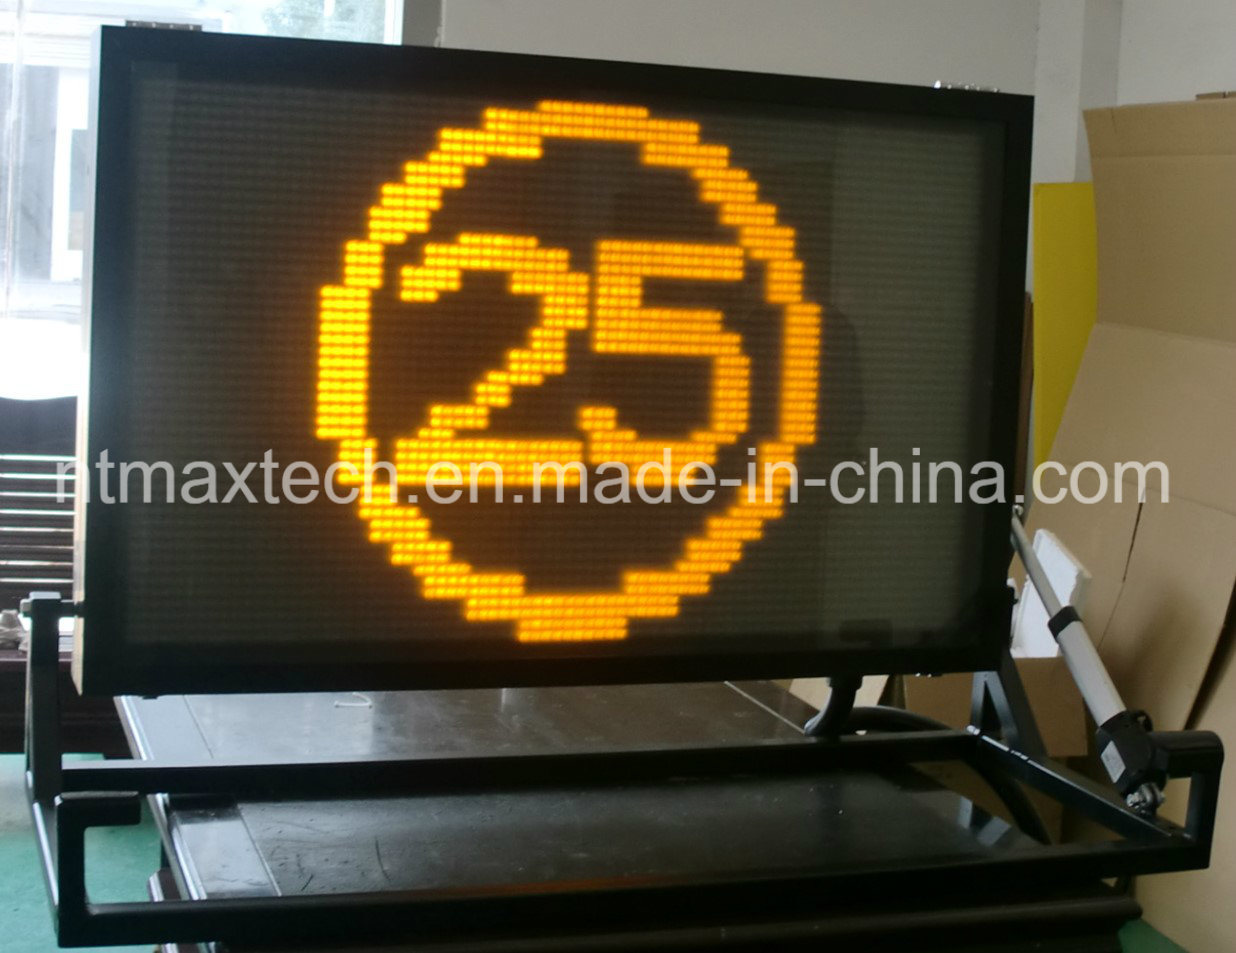 Compact Vehicle Mounted Message Board Traffic Sign for Traffic Management